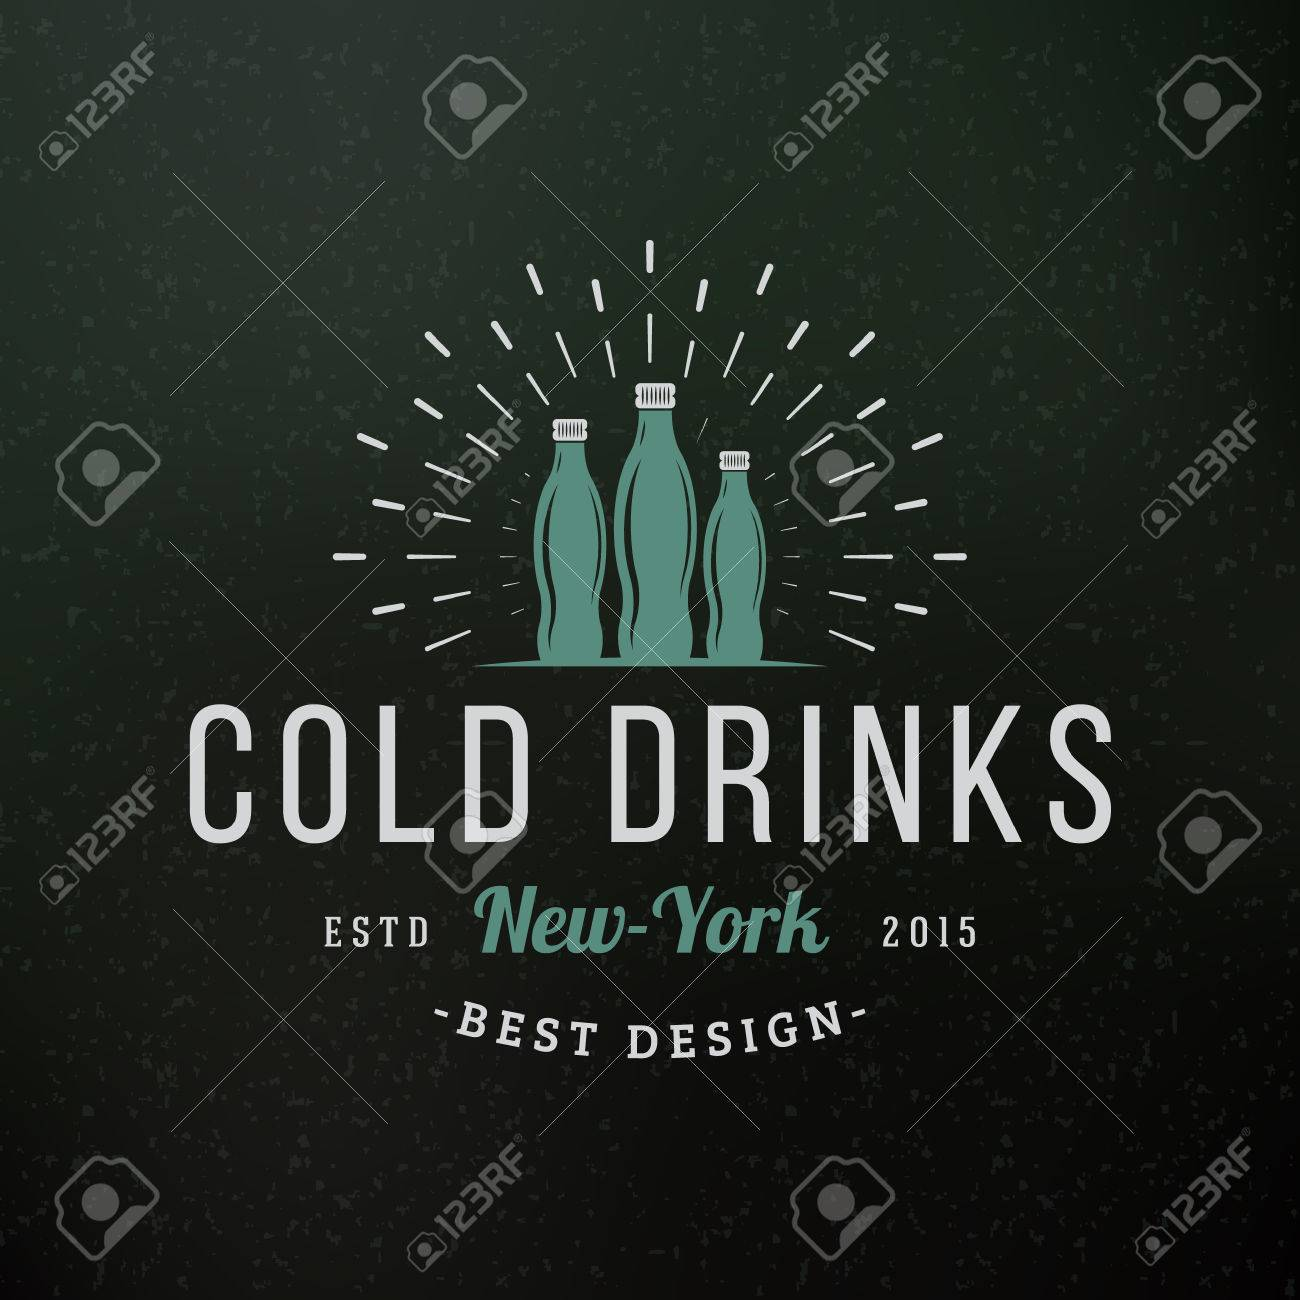 Cold drinks vintage retro design elements for logotype insignia vector cold drinks vintage retro design elements for logotype insignia badge label business sign template textured background friedricerecipe Images